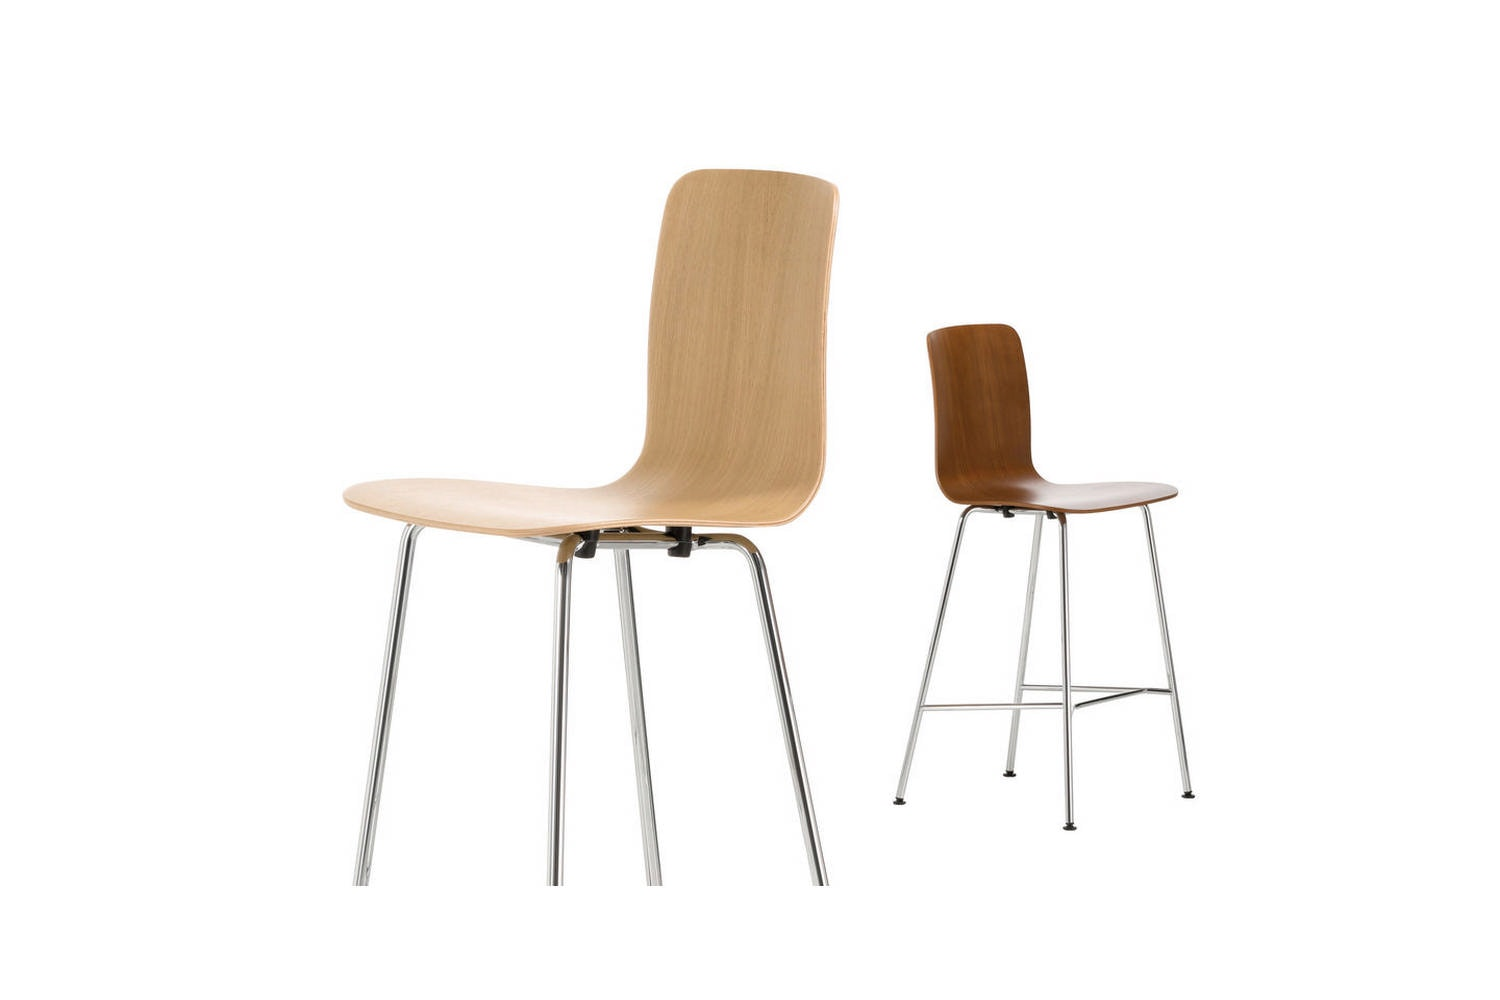 HAL Ply Stool Medium by Jasper Morrison for Vitra